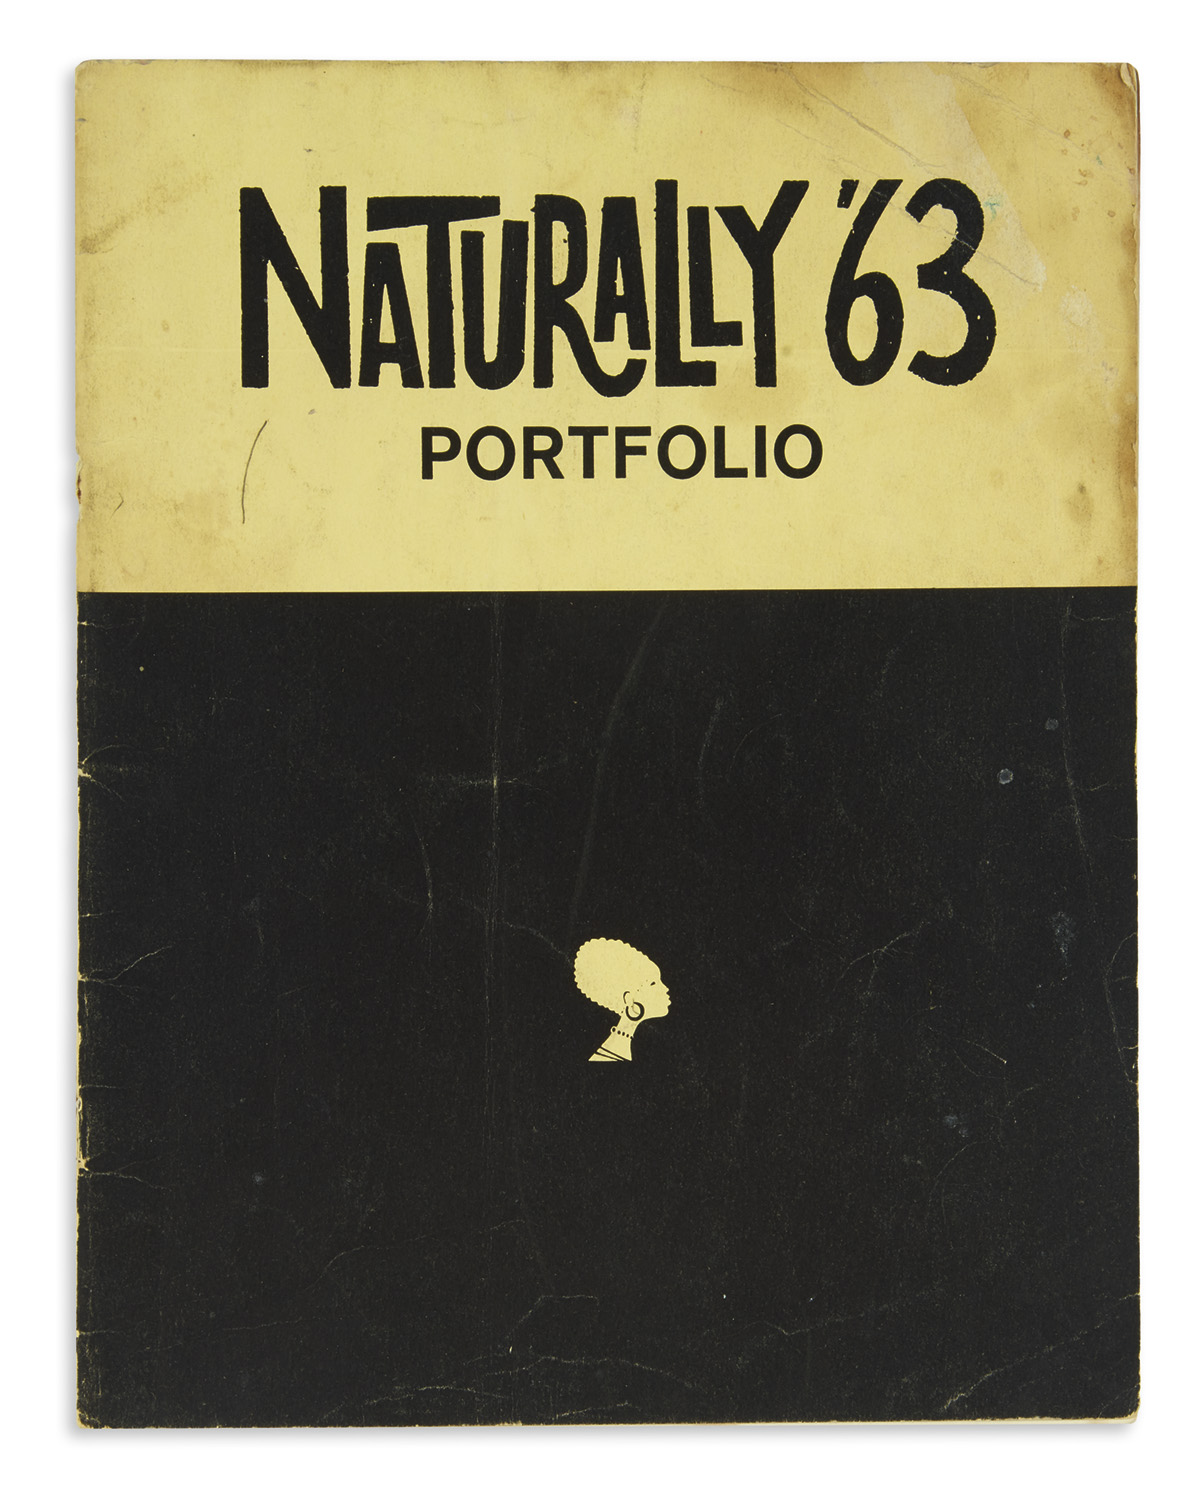 (BEAUTY)-Naturally-63-Portfolio-(a-program-issued-by-the-Gra